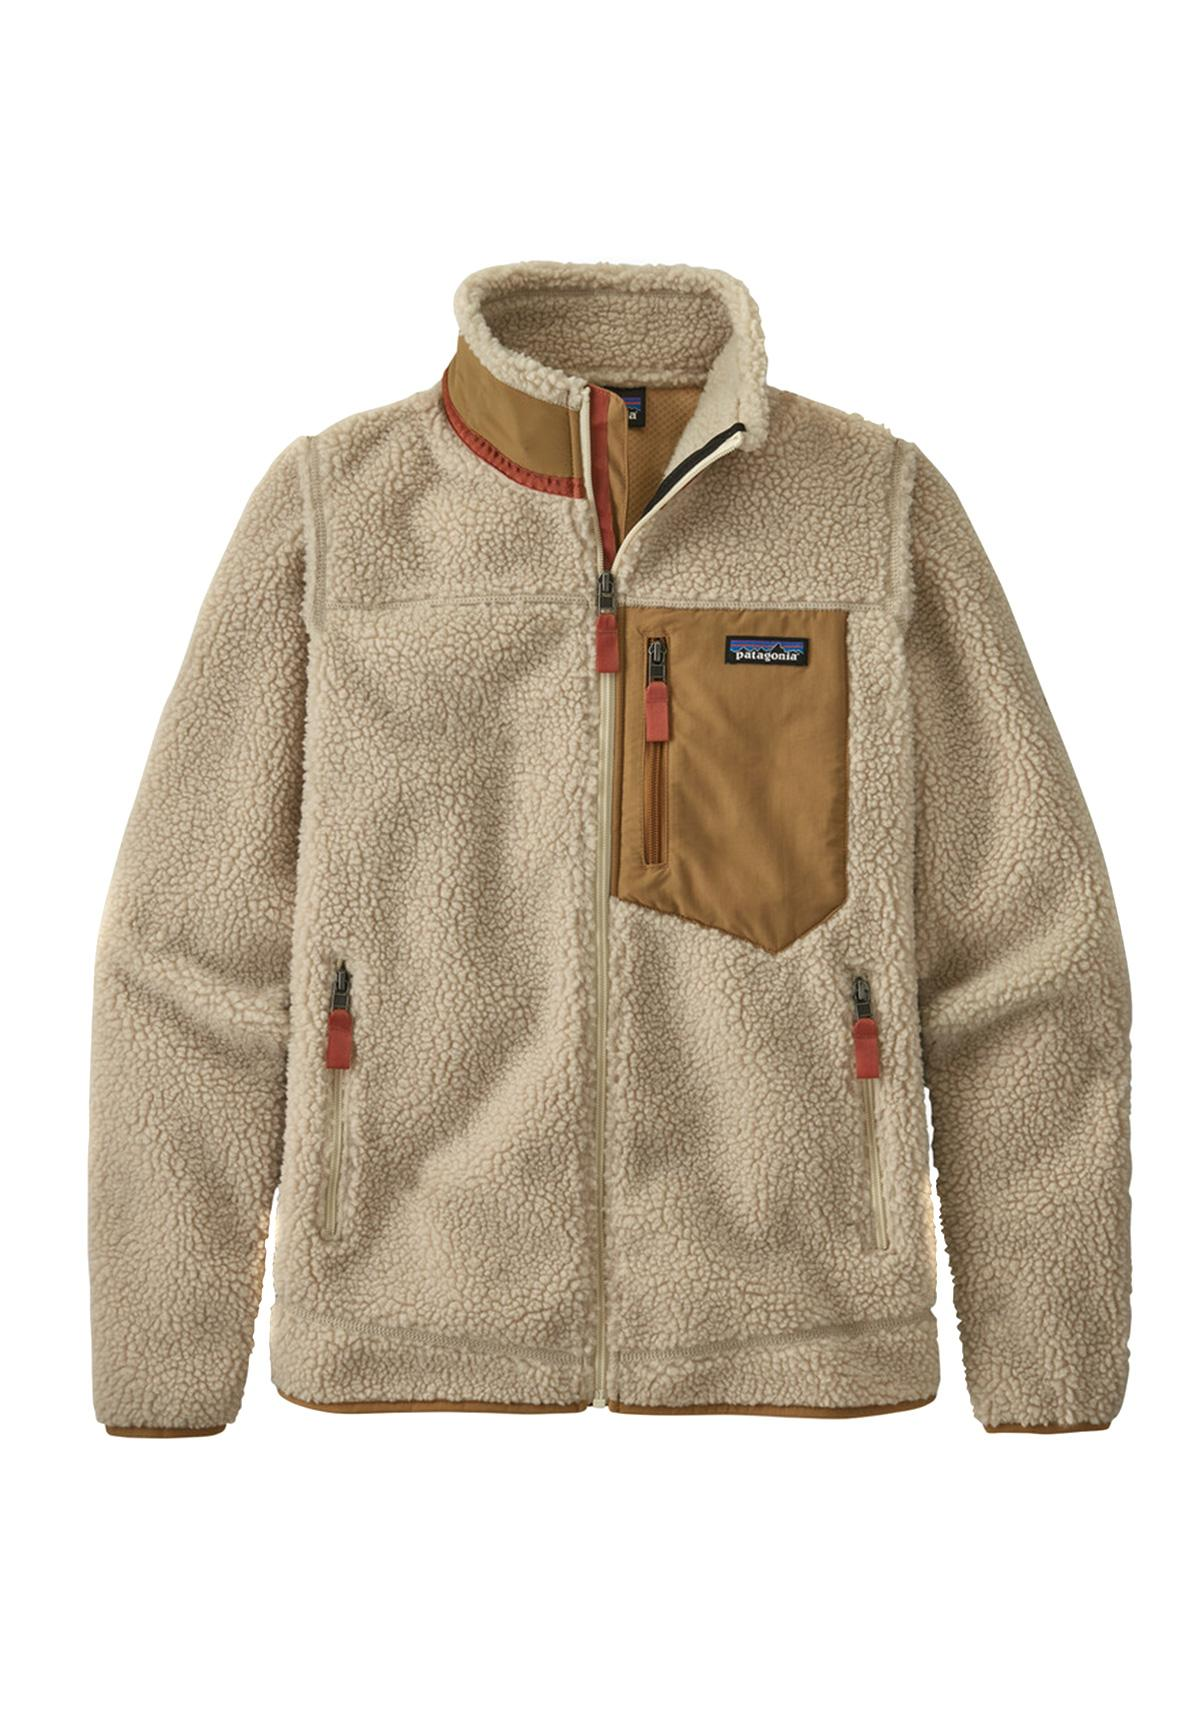 (w) Jacke Patagonia Classic Retro-X Fleece natural